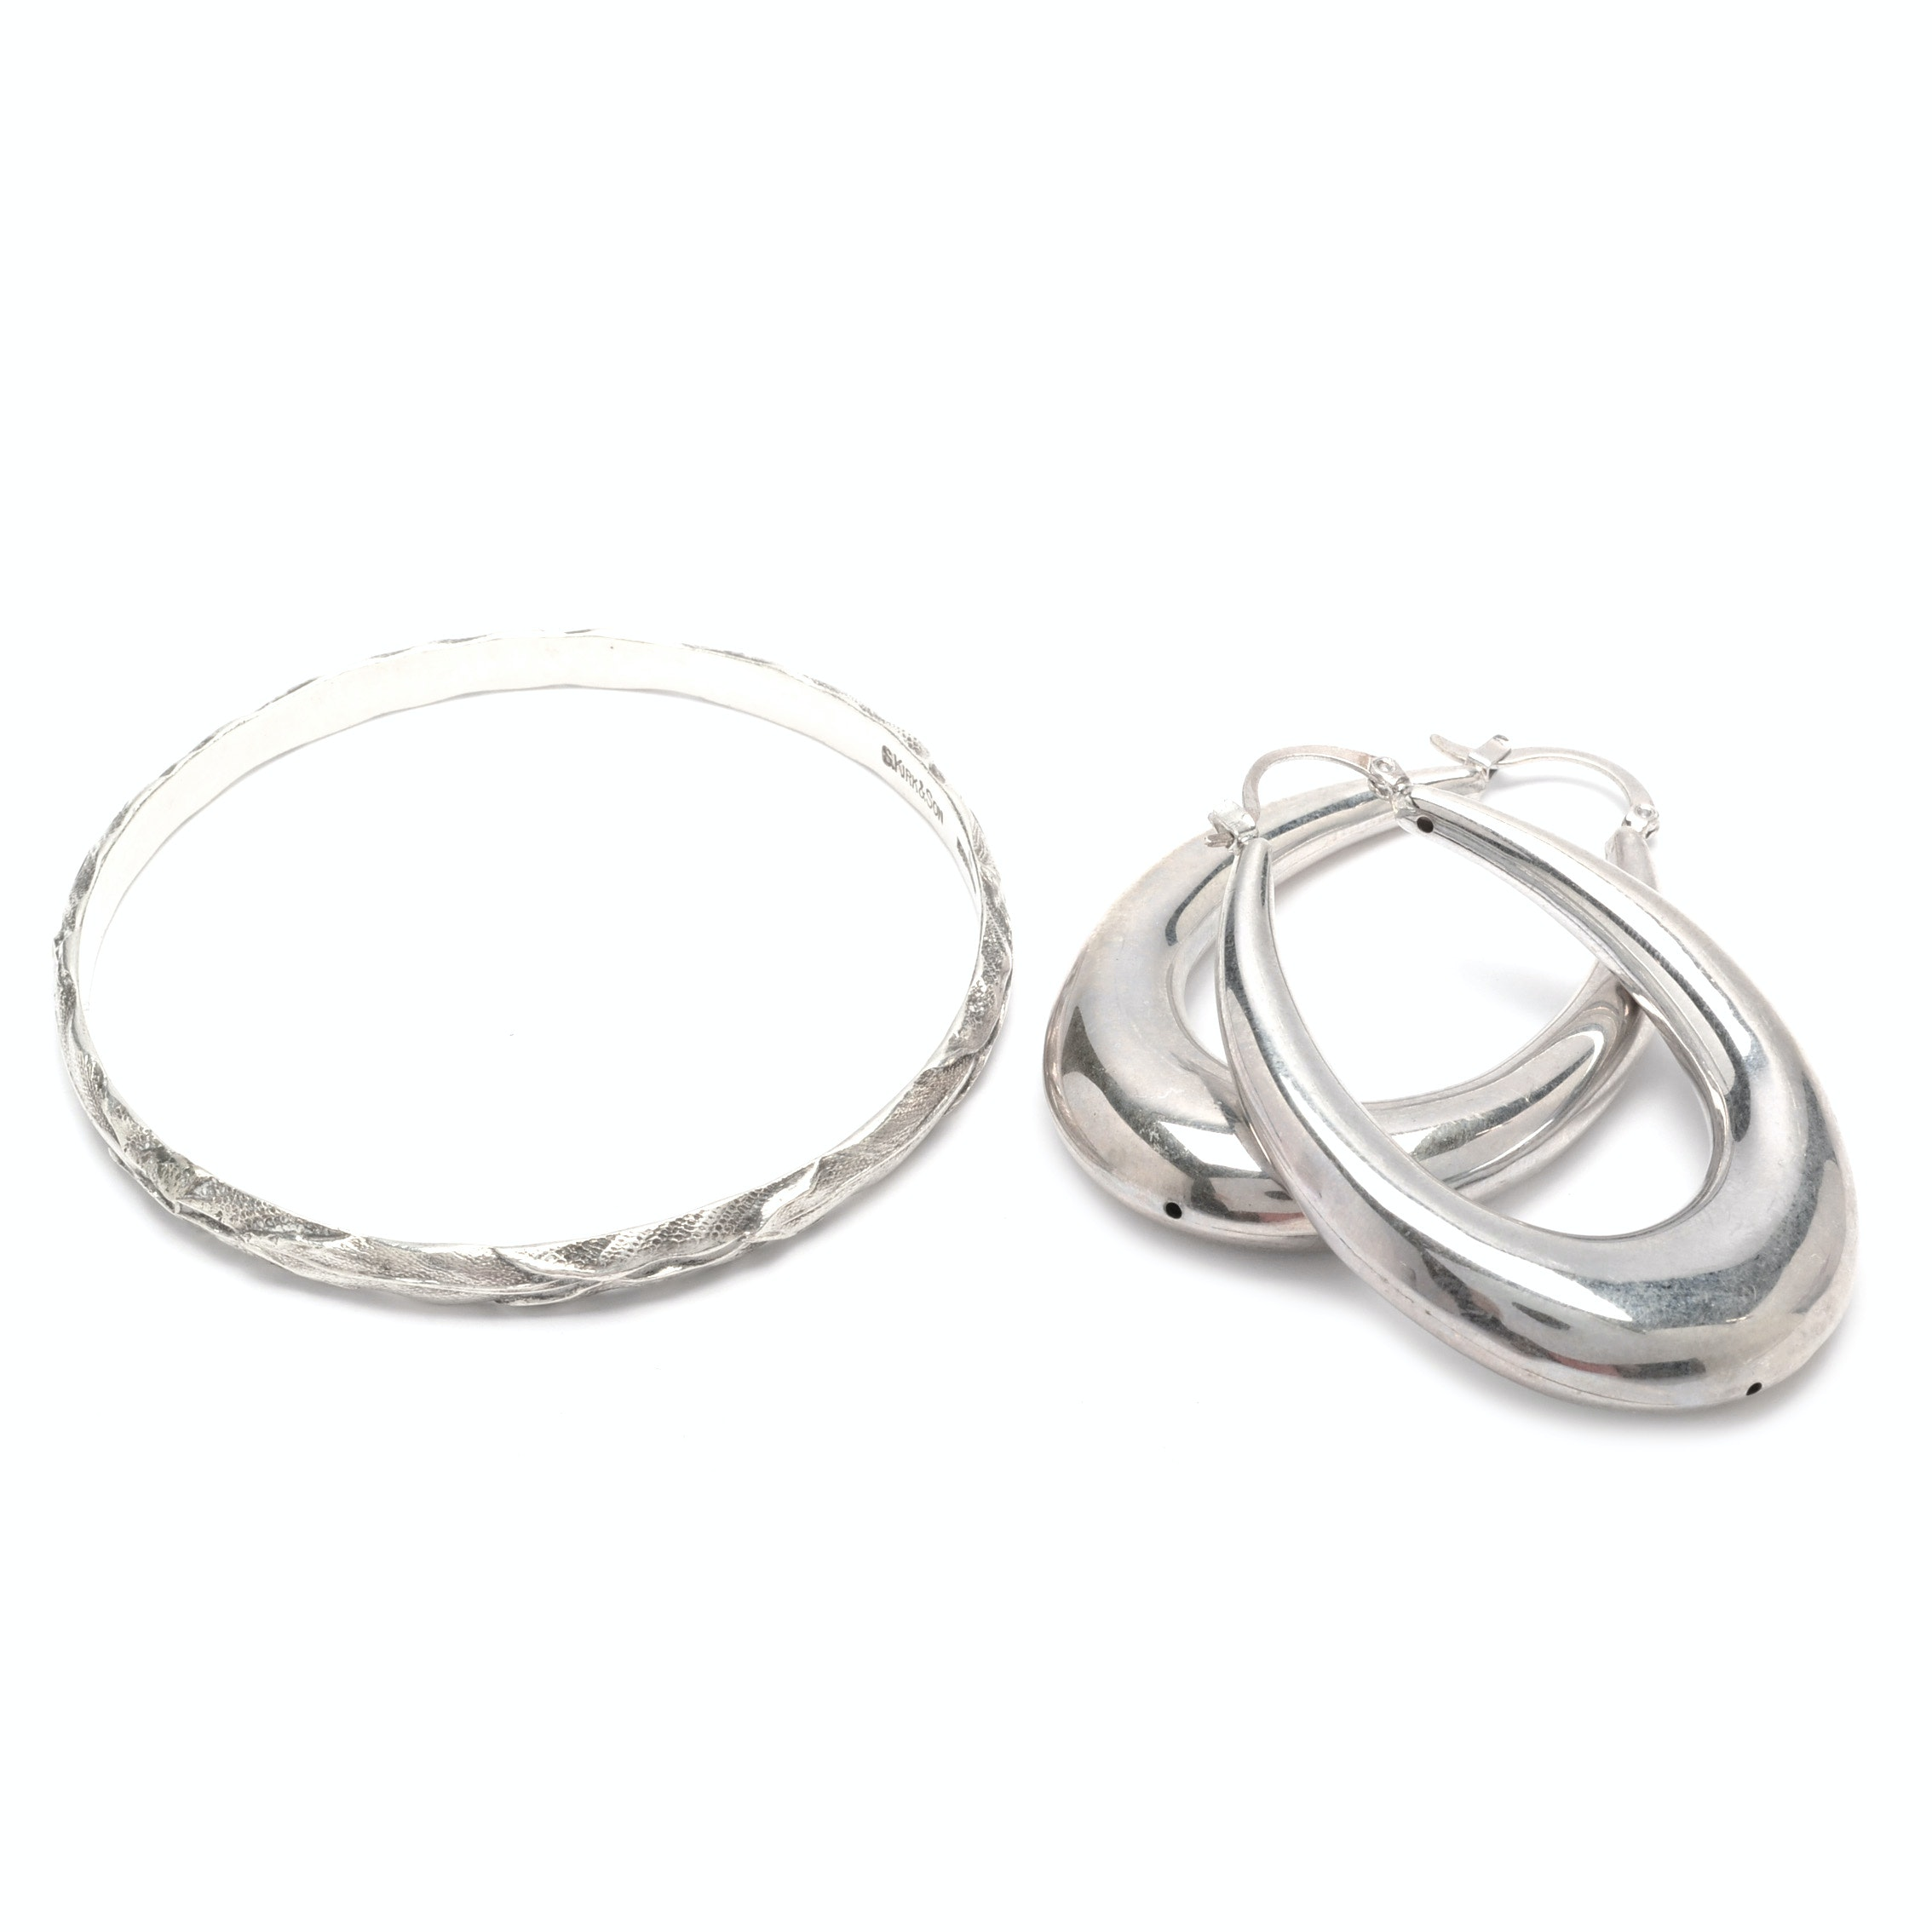 Sterling Silver S Kirk and Son Bangle Bracelet with a Pair of Hoop Earrings